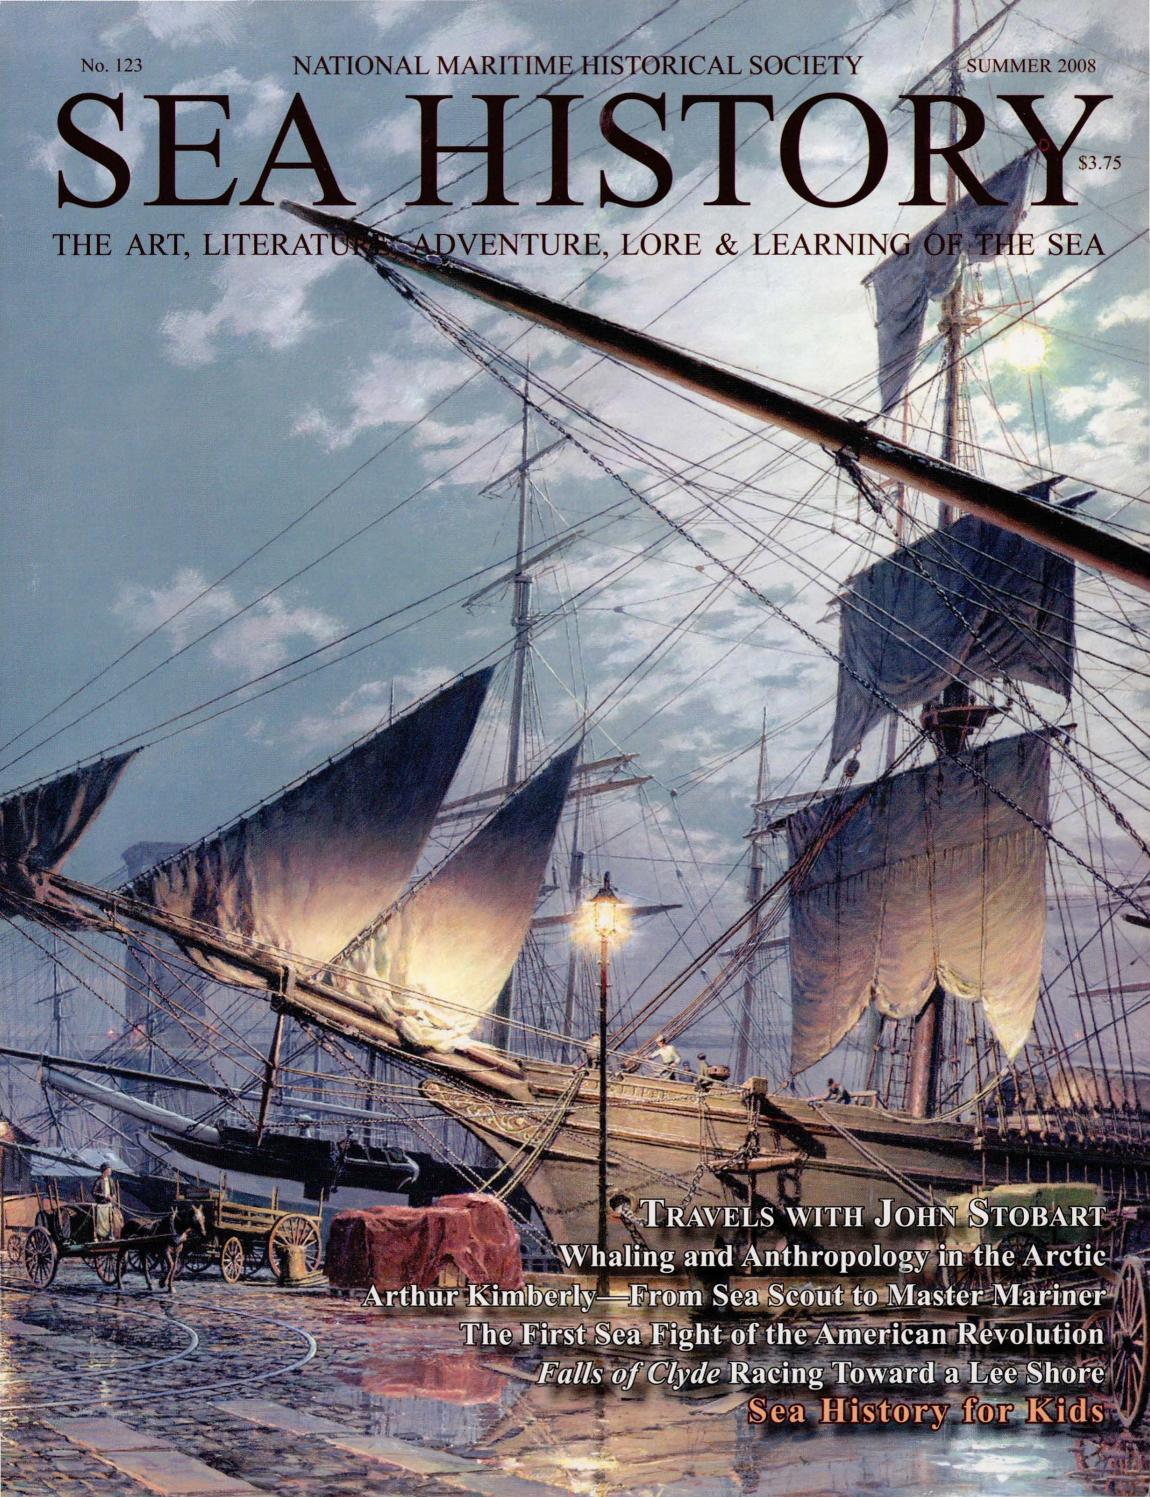 Sea History 123 - Summer 2008 by National Maritime